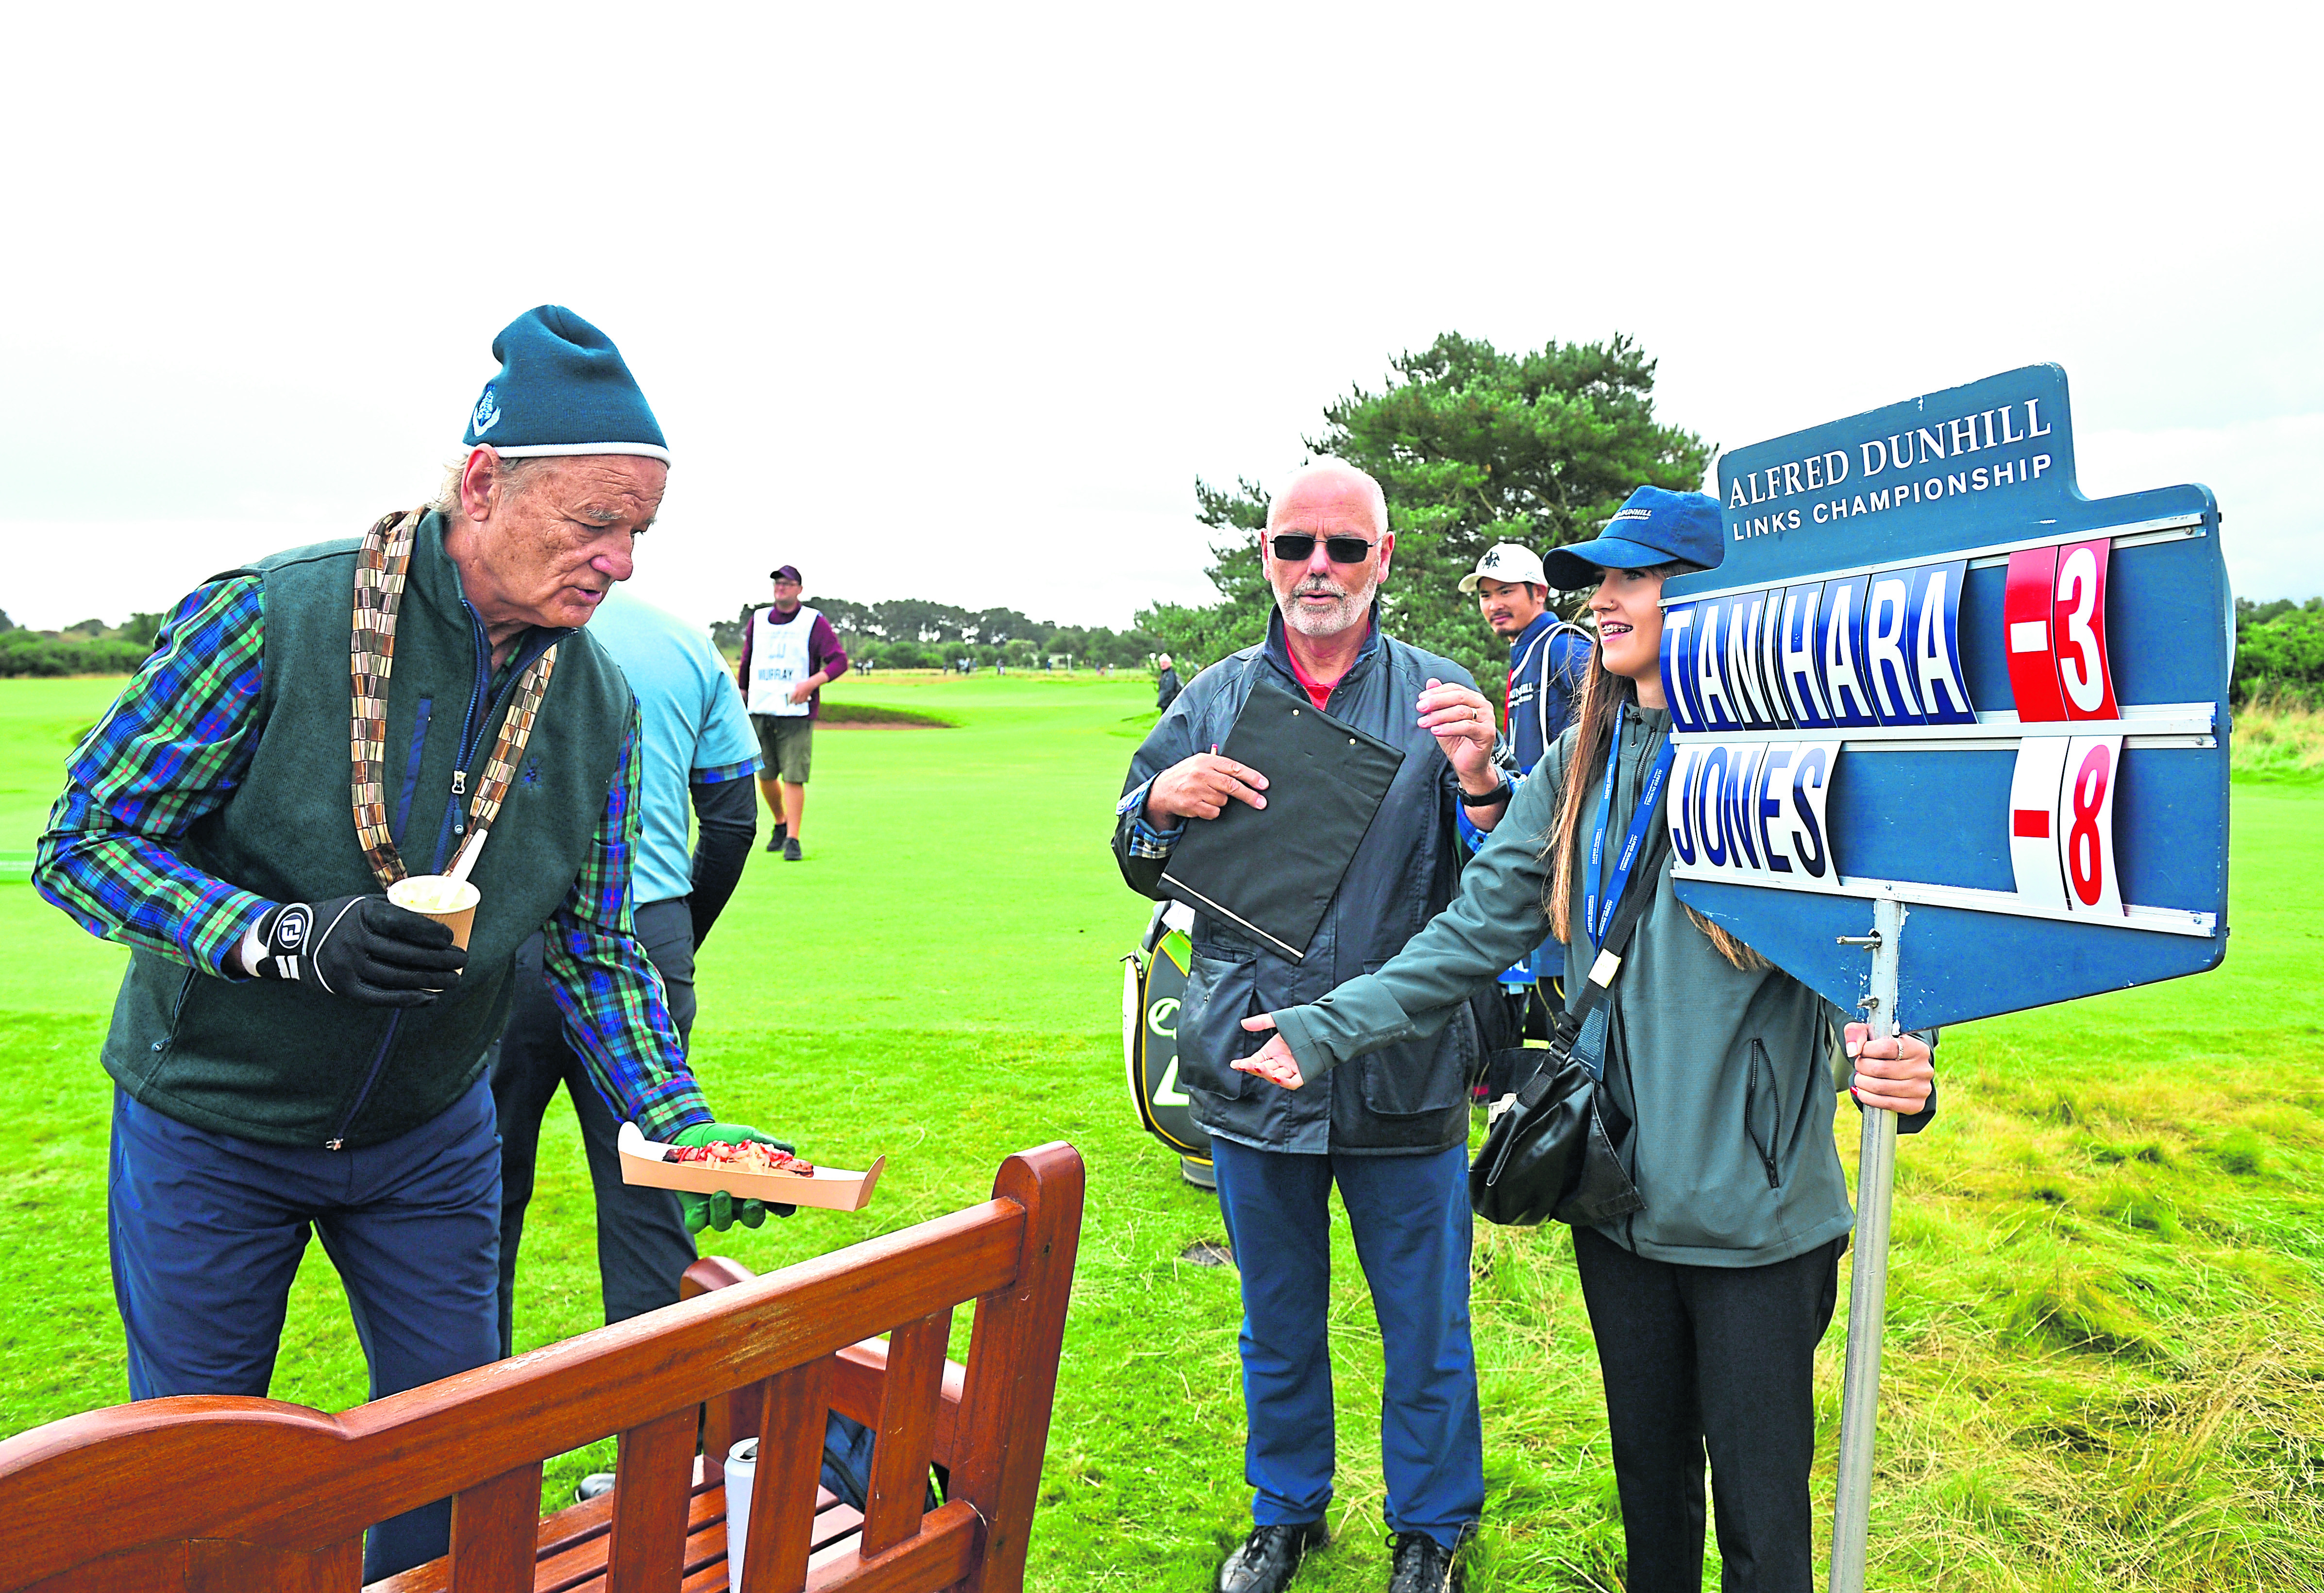 Bill Murray hands the scorer a hot dog during Day two of the Alfred Dunhill Links Championship at Carnoustie.